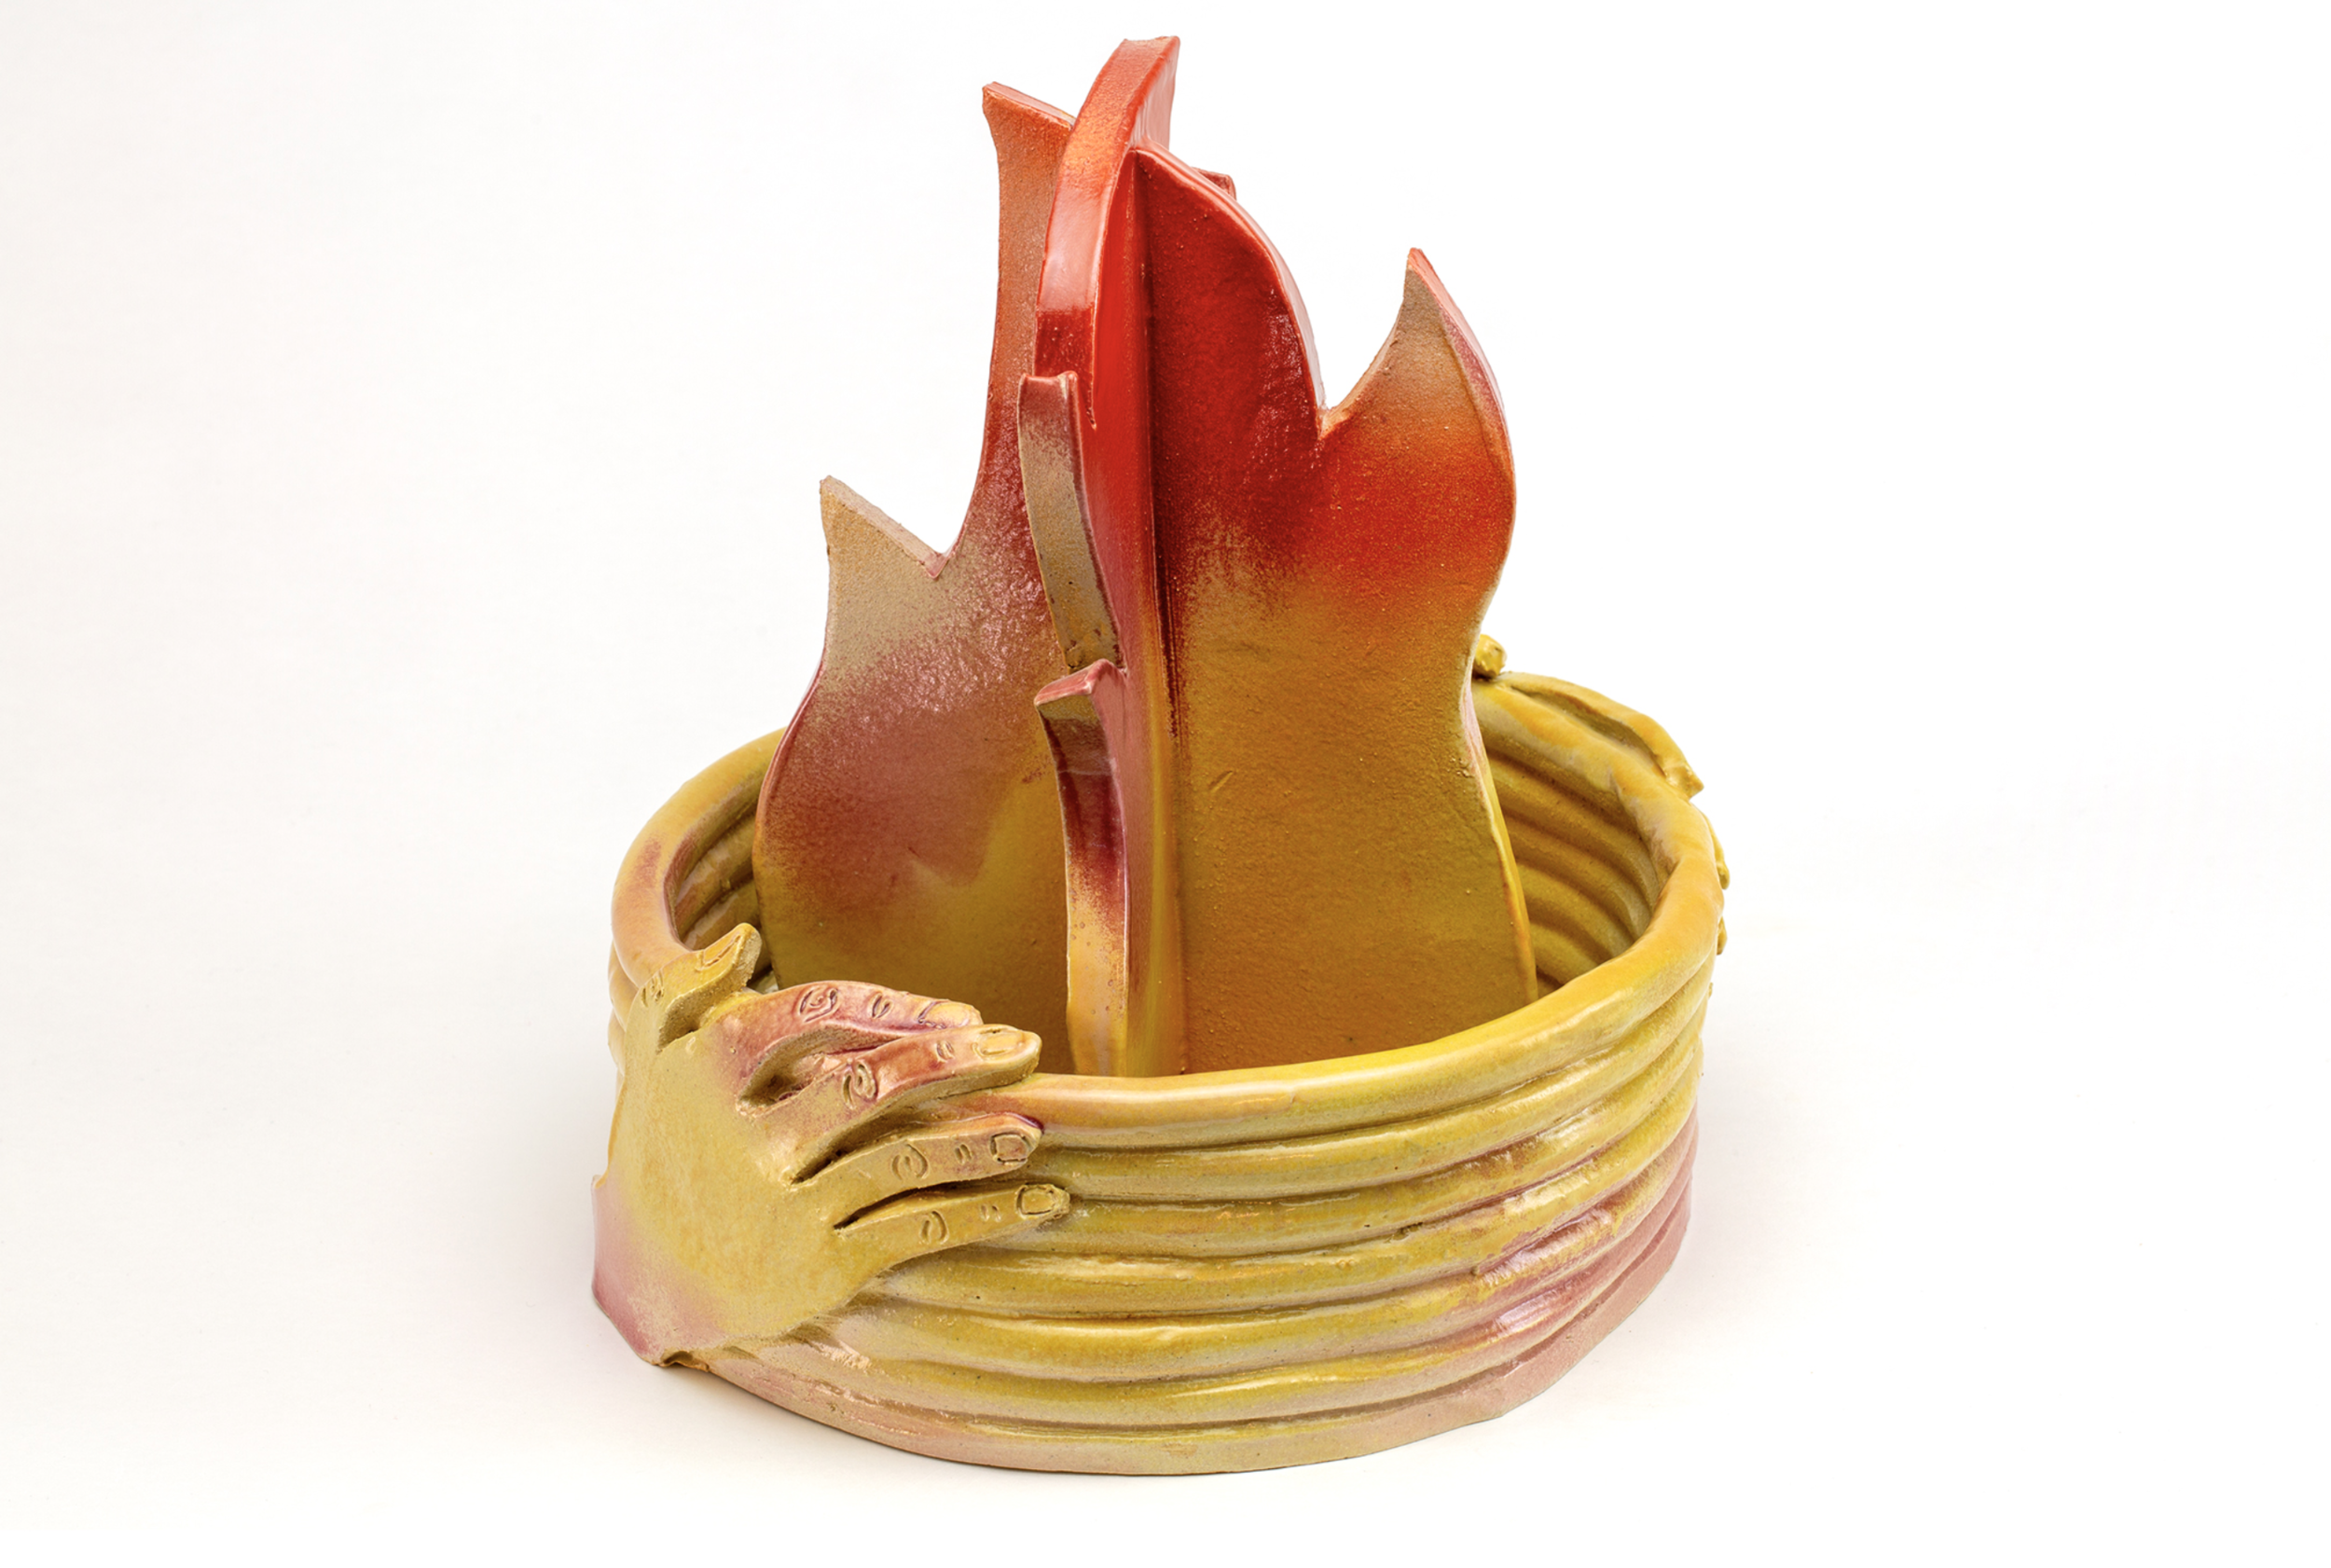 Sarah Alice Moran, See Fire See Sea, 2018, Ceramic, 11 x 10.5 x 12""